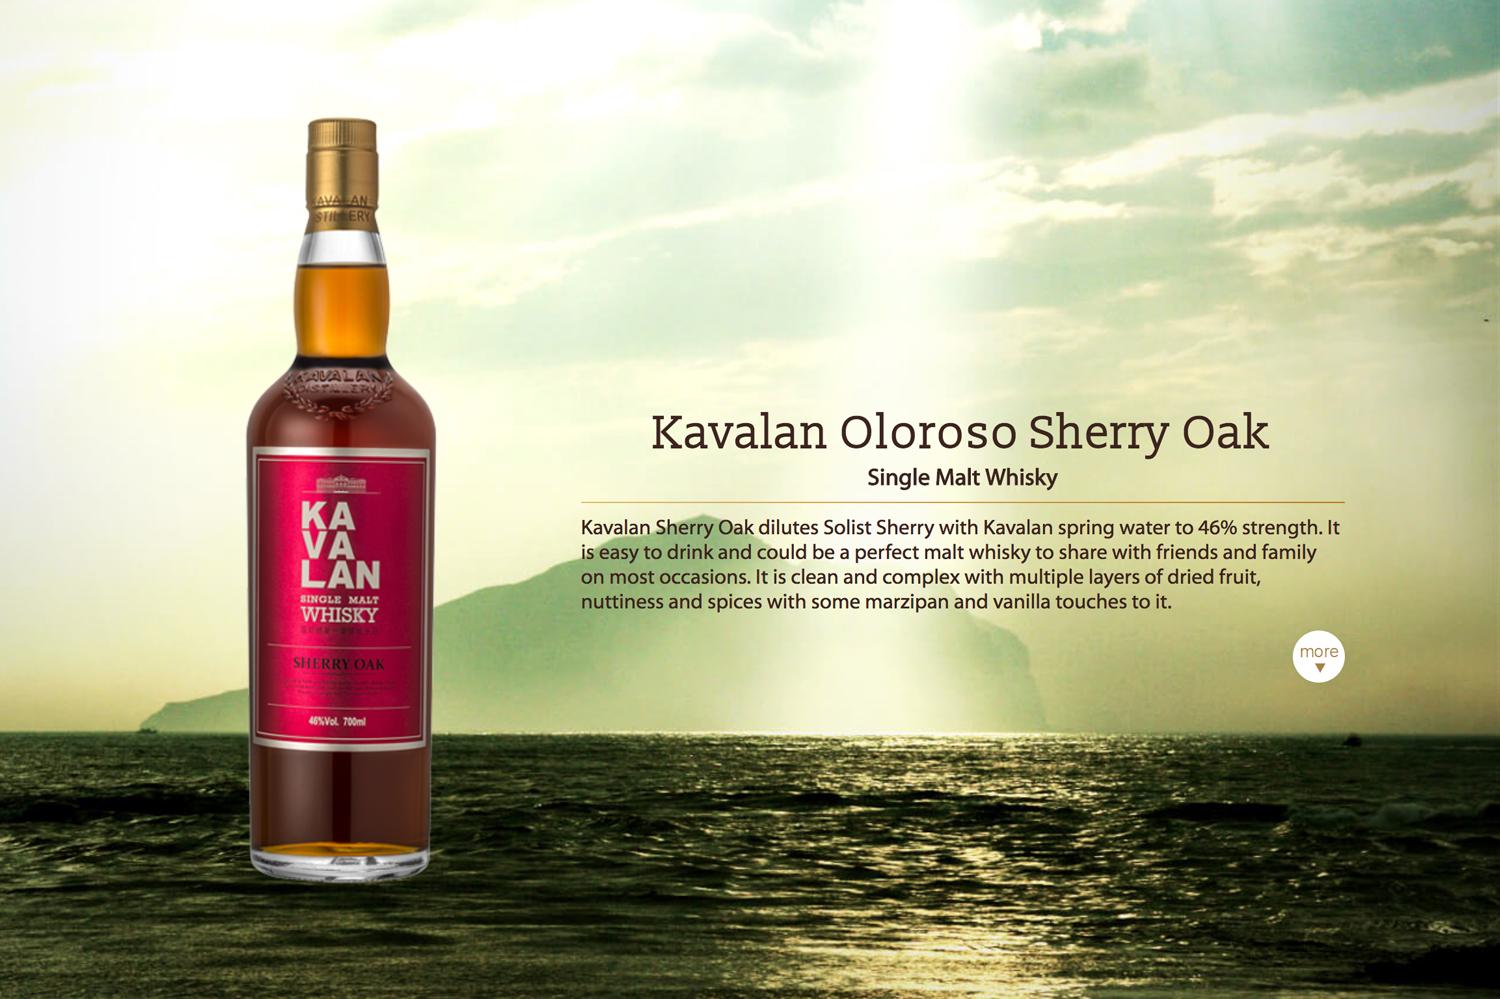 The Kavalan Oloroso Sherry Oak had received the highest grade possible -- Gold Outstanding.